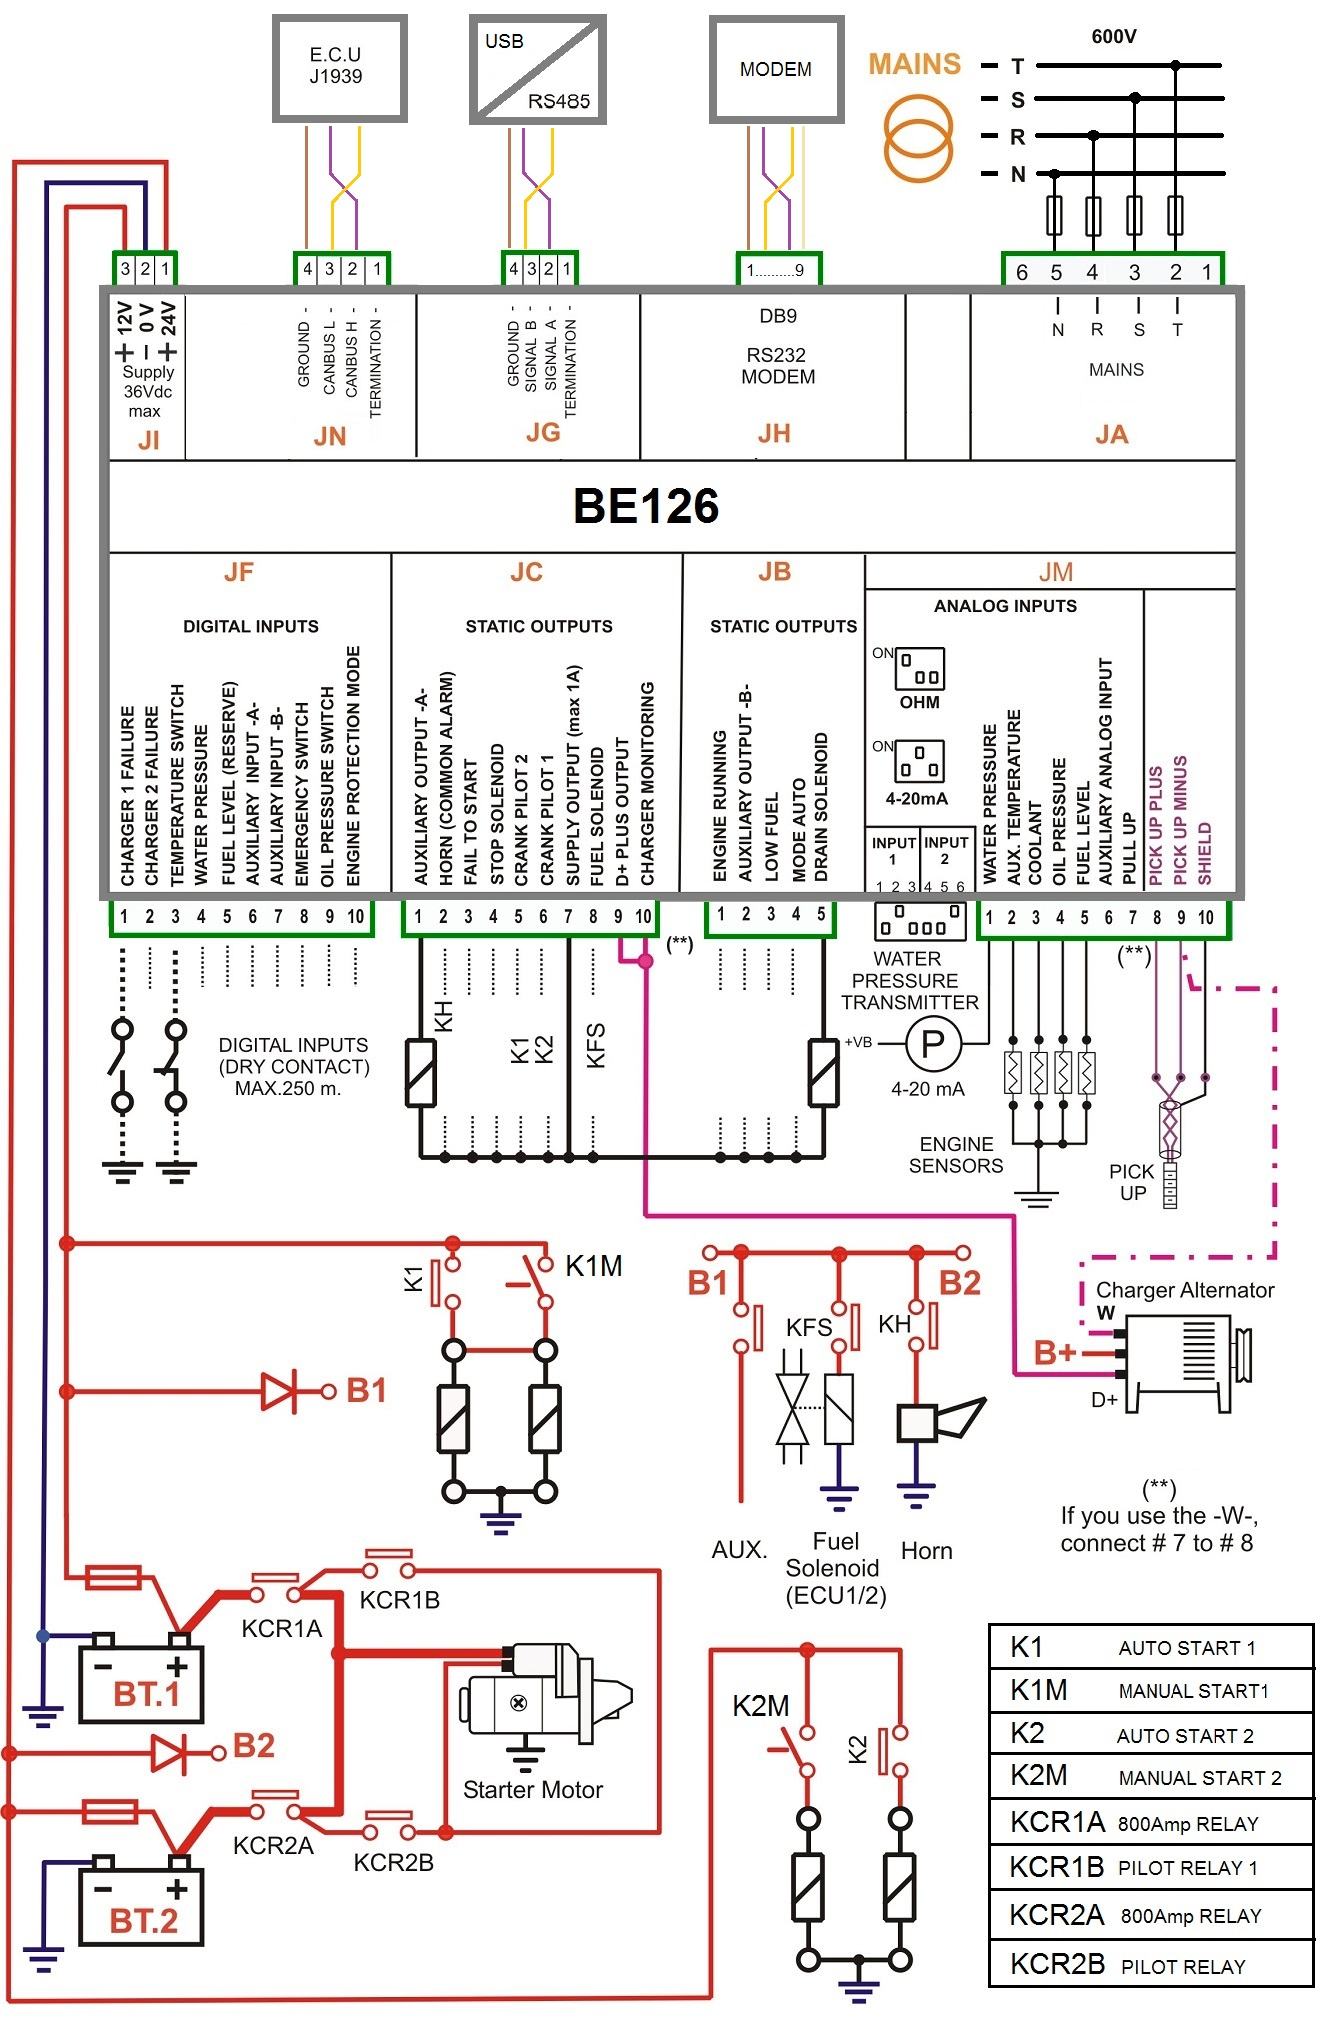 NFPA20 fire pump controller wiring diagram fire pump controller wiring diagram genset controller Basic Electrical Wiring Diagrams at eliteediting.co